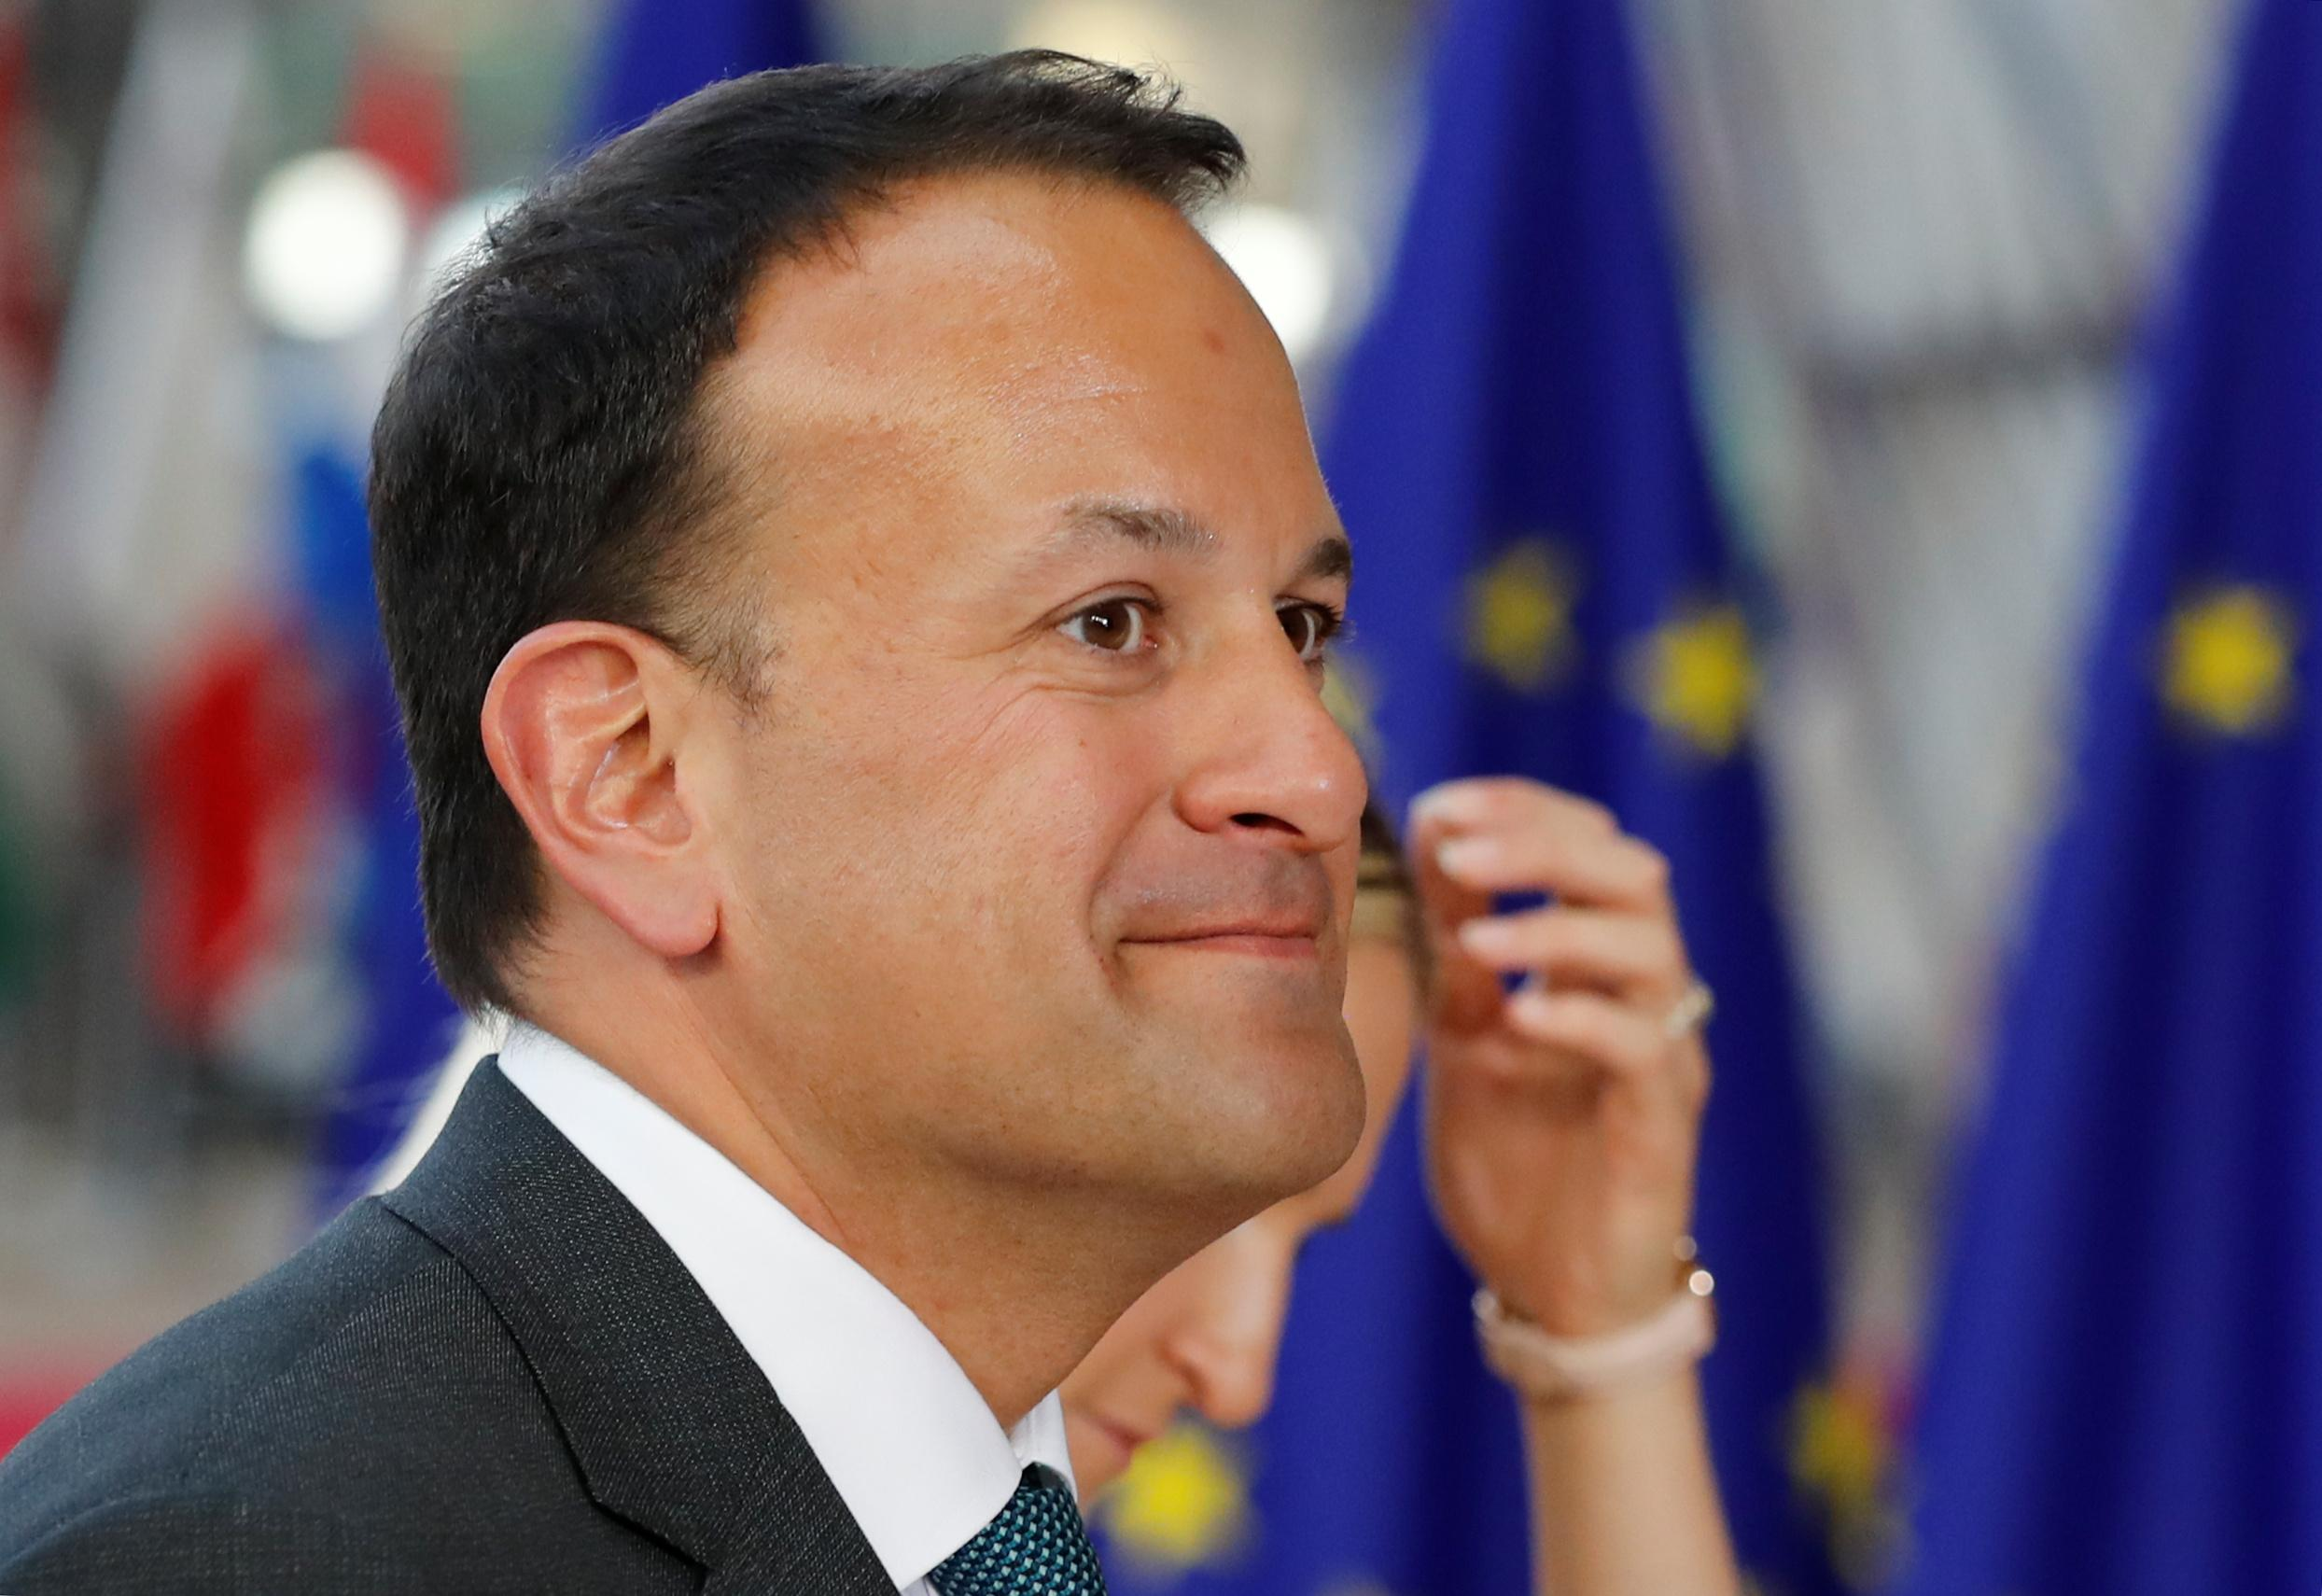 Irish Prime Minister Leo Varadkar arrives at an European Union leaders summit in Brussels, Belgium, June 28, 2018. Yves Herman